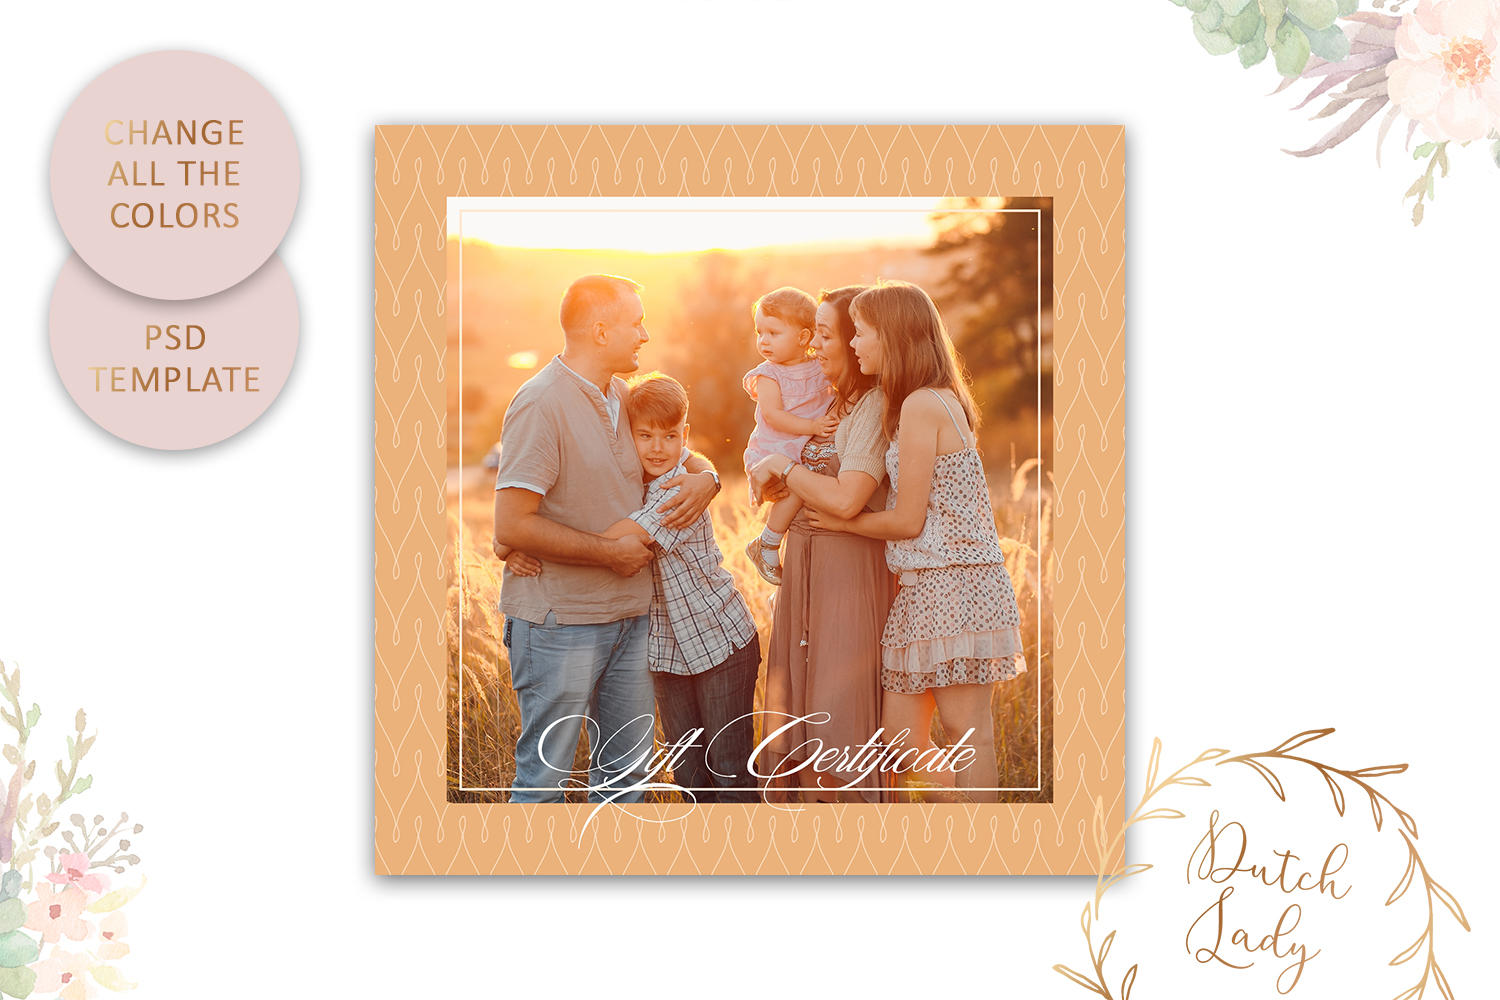 Photo Gift Card Template for Adobe Photoshop - #28 example image 4